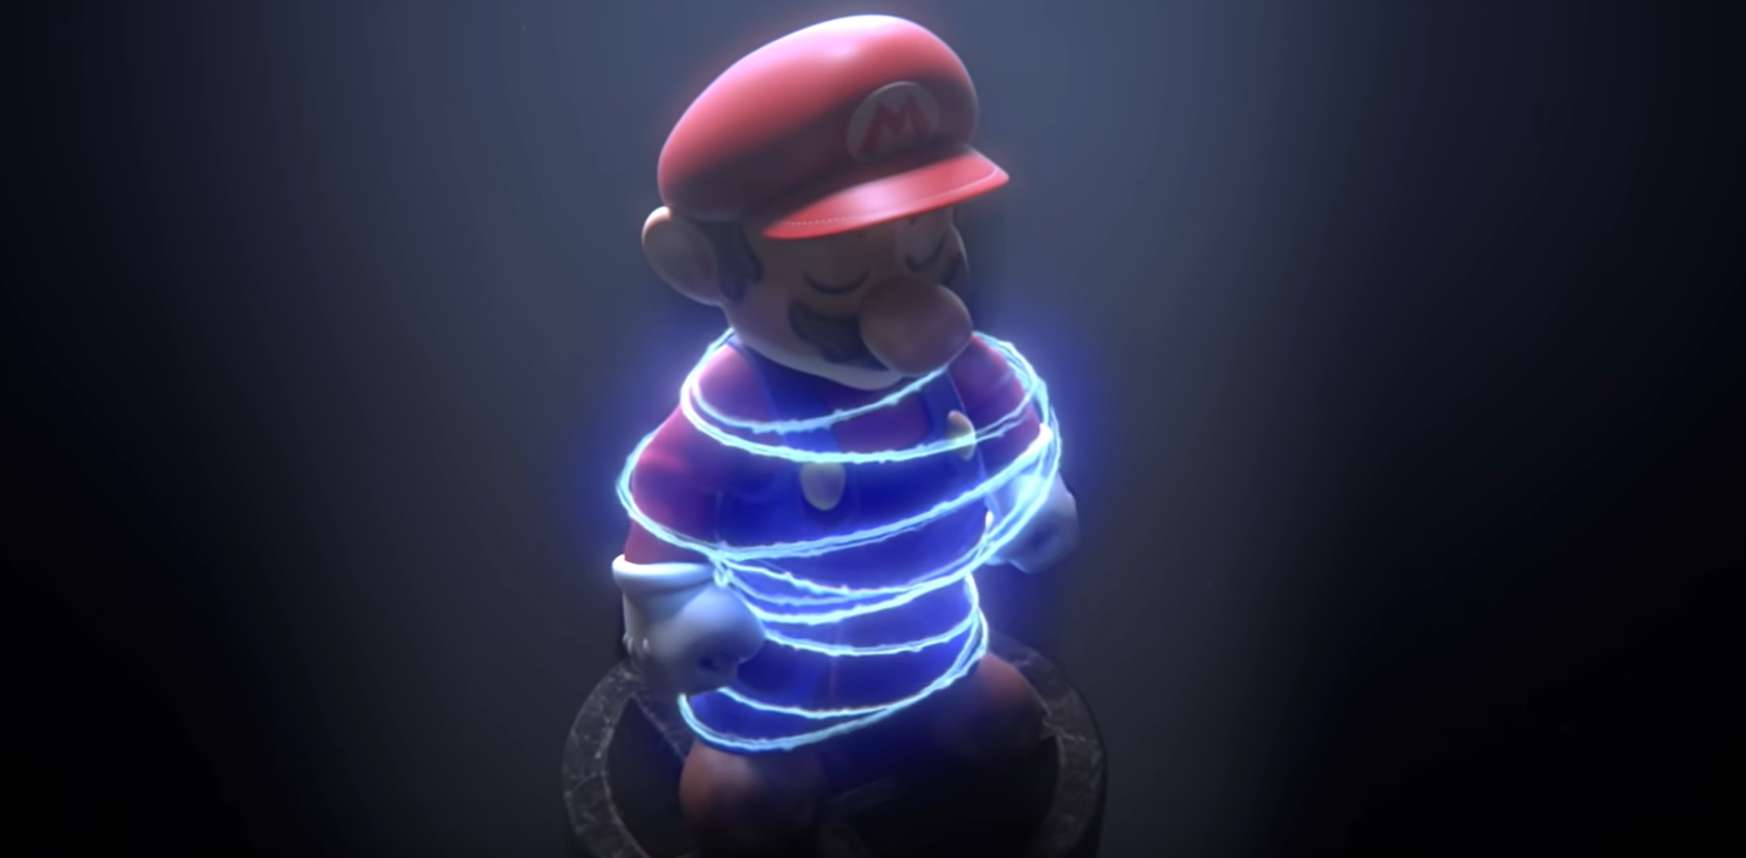 Nintendo Sets Its Sights On Super Smash Bros. Modders And Starts Taking Their Videos Down